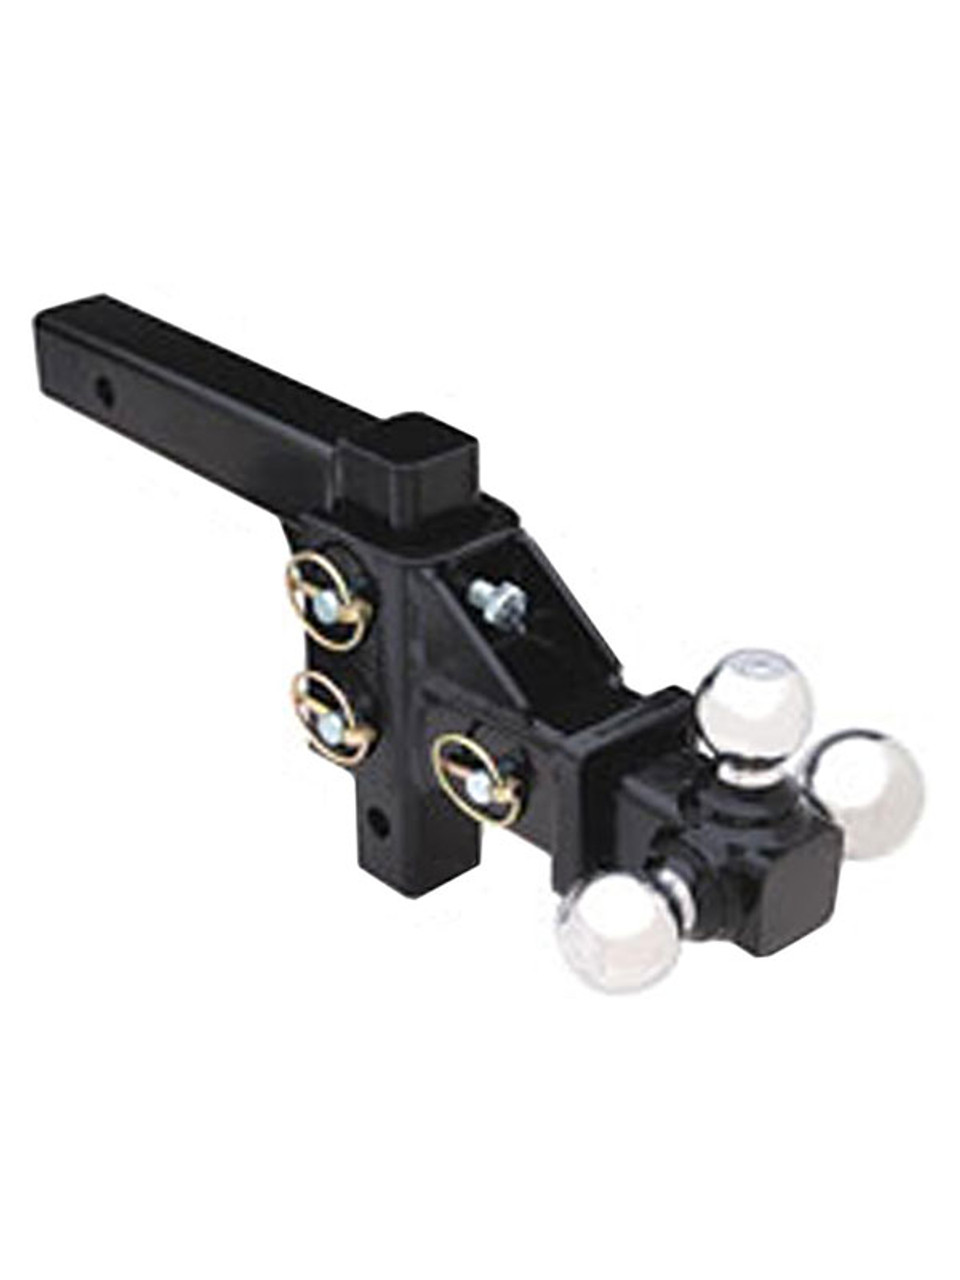 R5700-B --- Adjustable Ball Mount, Tri-Ball Combination, 10,000 lb maximum Capacity